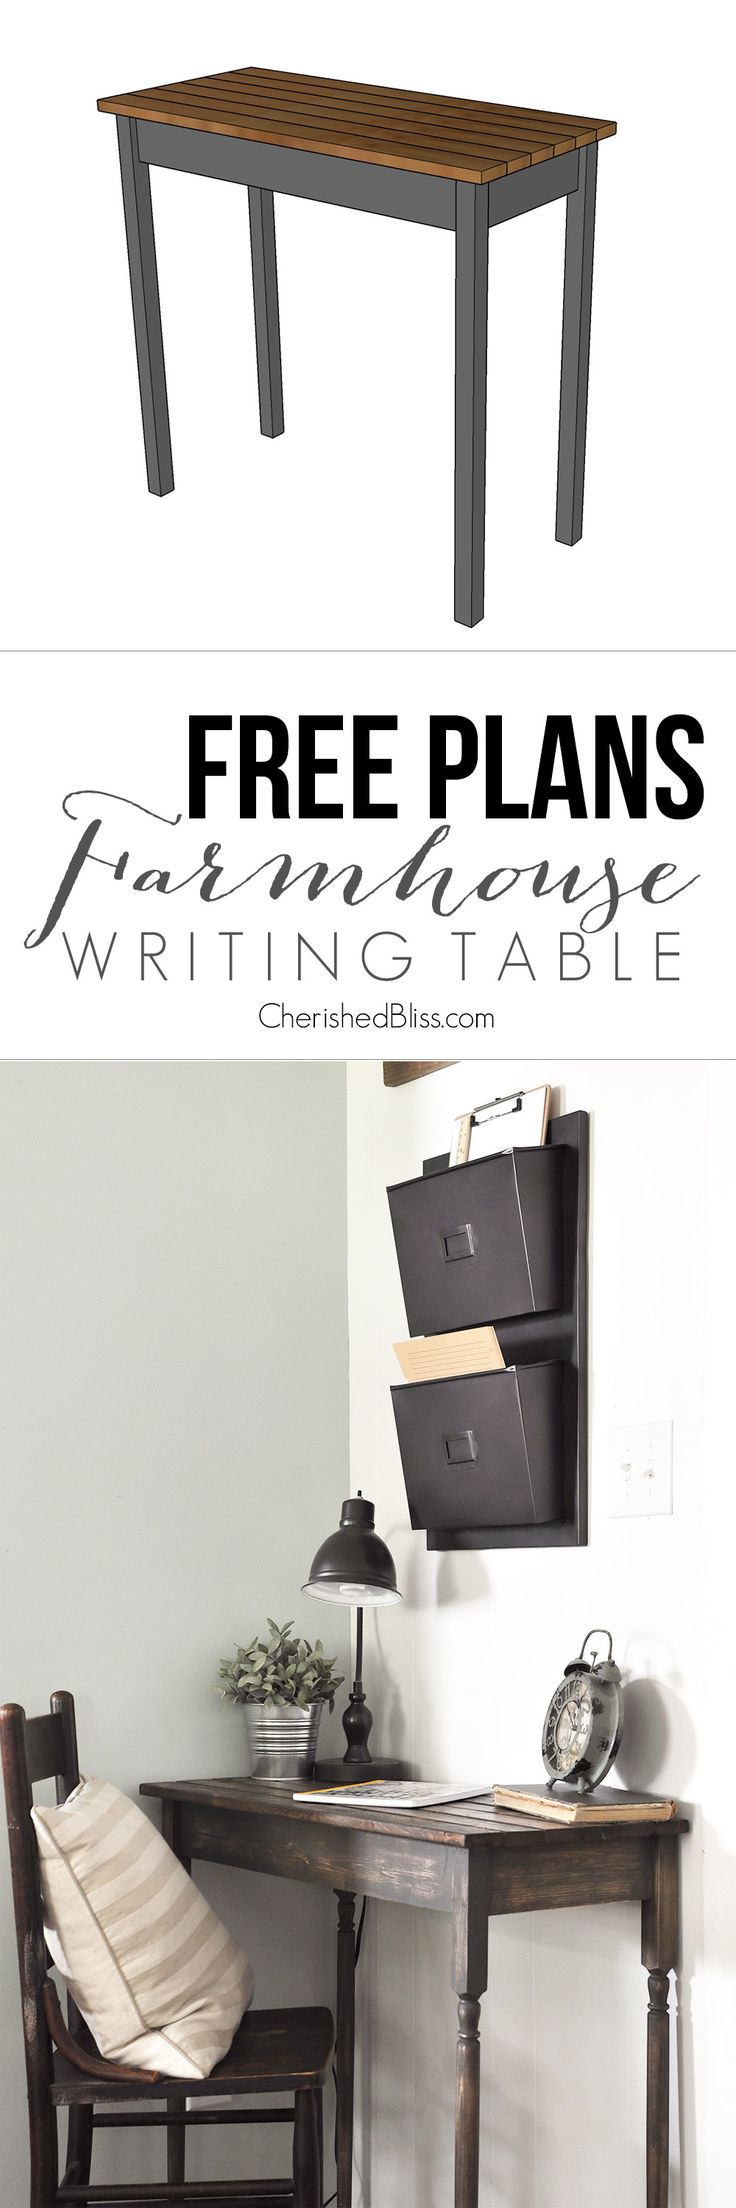 top  best small writing desk ideas on pinterest  writing desk  - diy farmhouse writing table